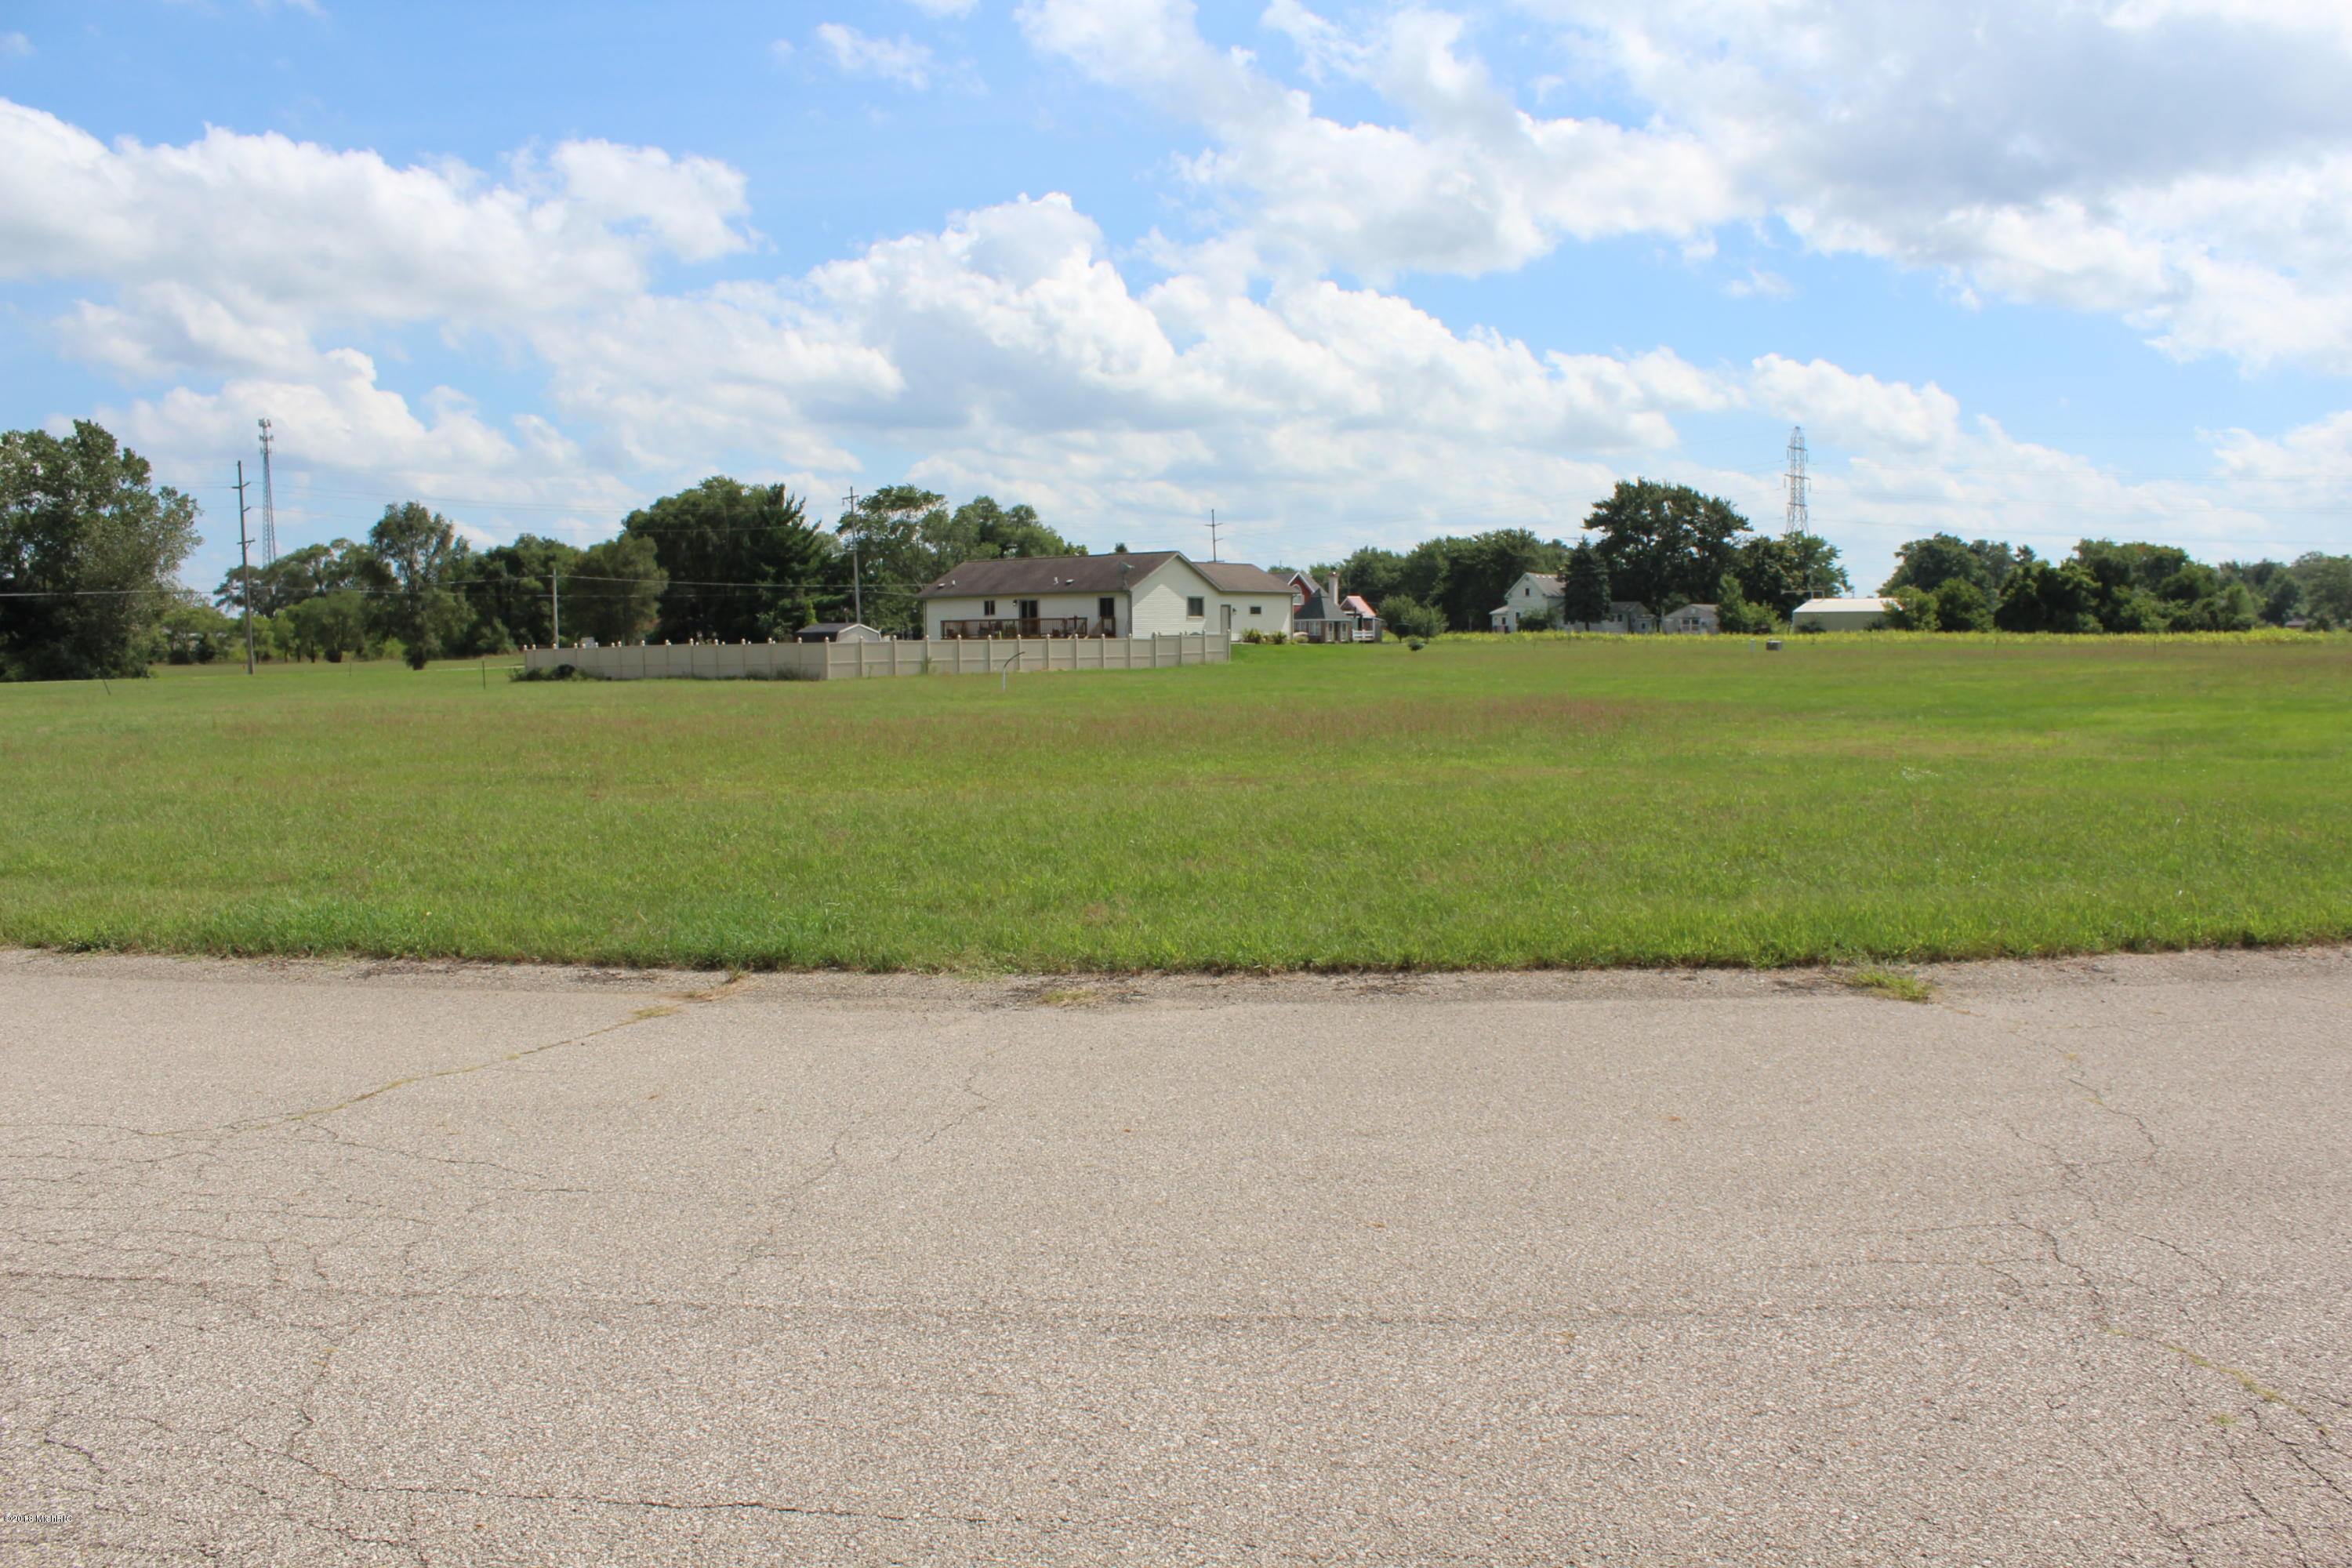 00 MANORWOOD CIRCLE LOT 23 ROAD, BENTON HARBOR, MI 49022